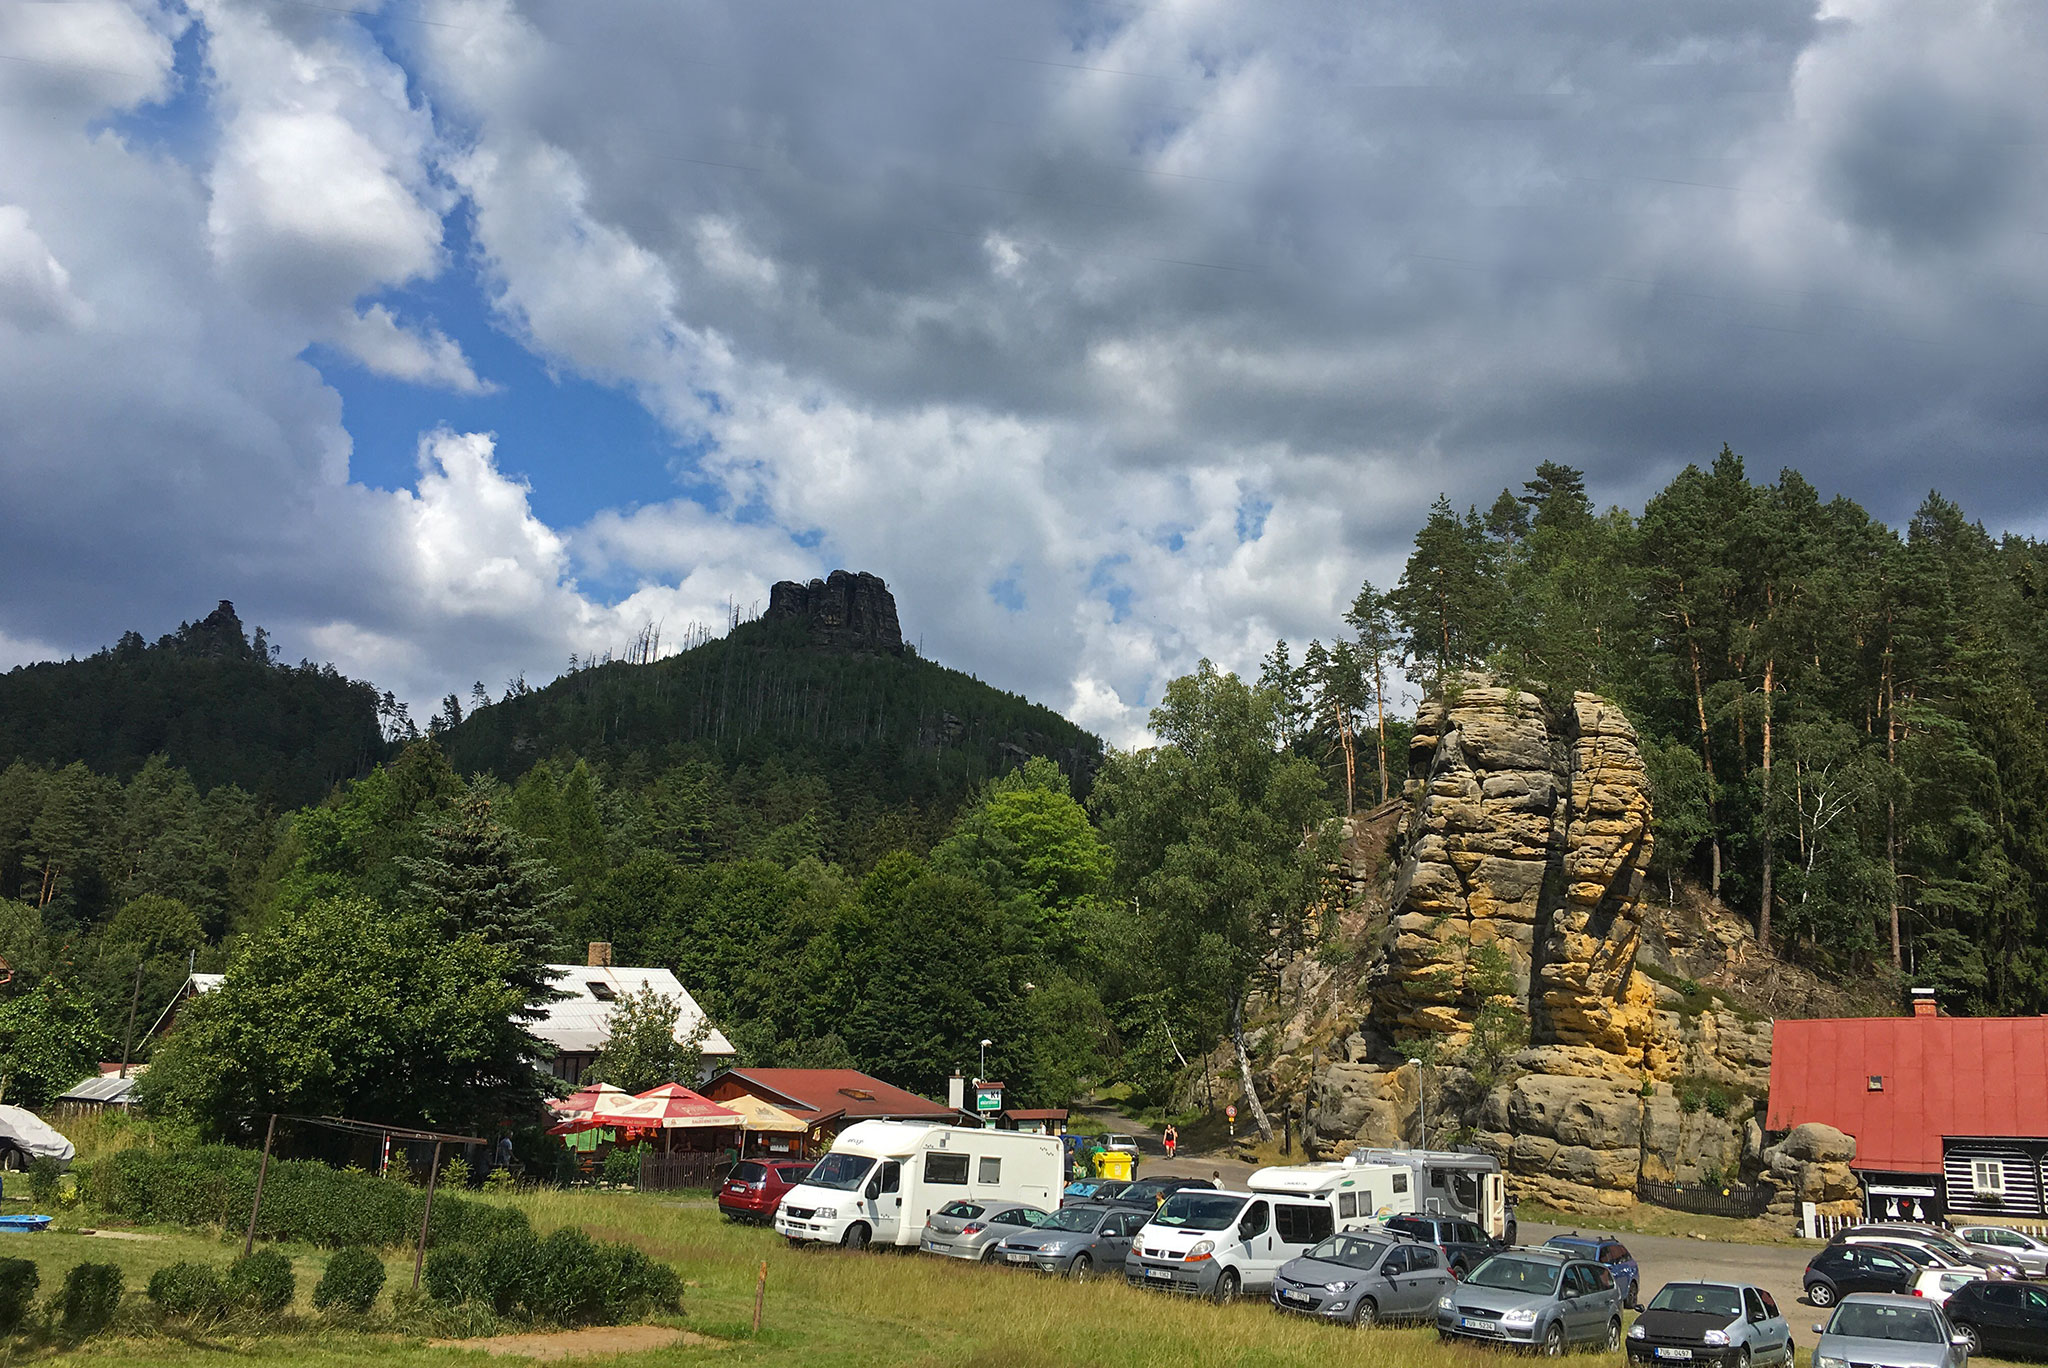 Packed with people and cars in the Bohemian Switzerland National Park